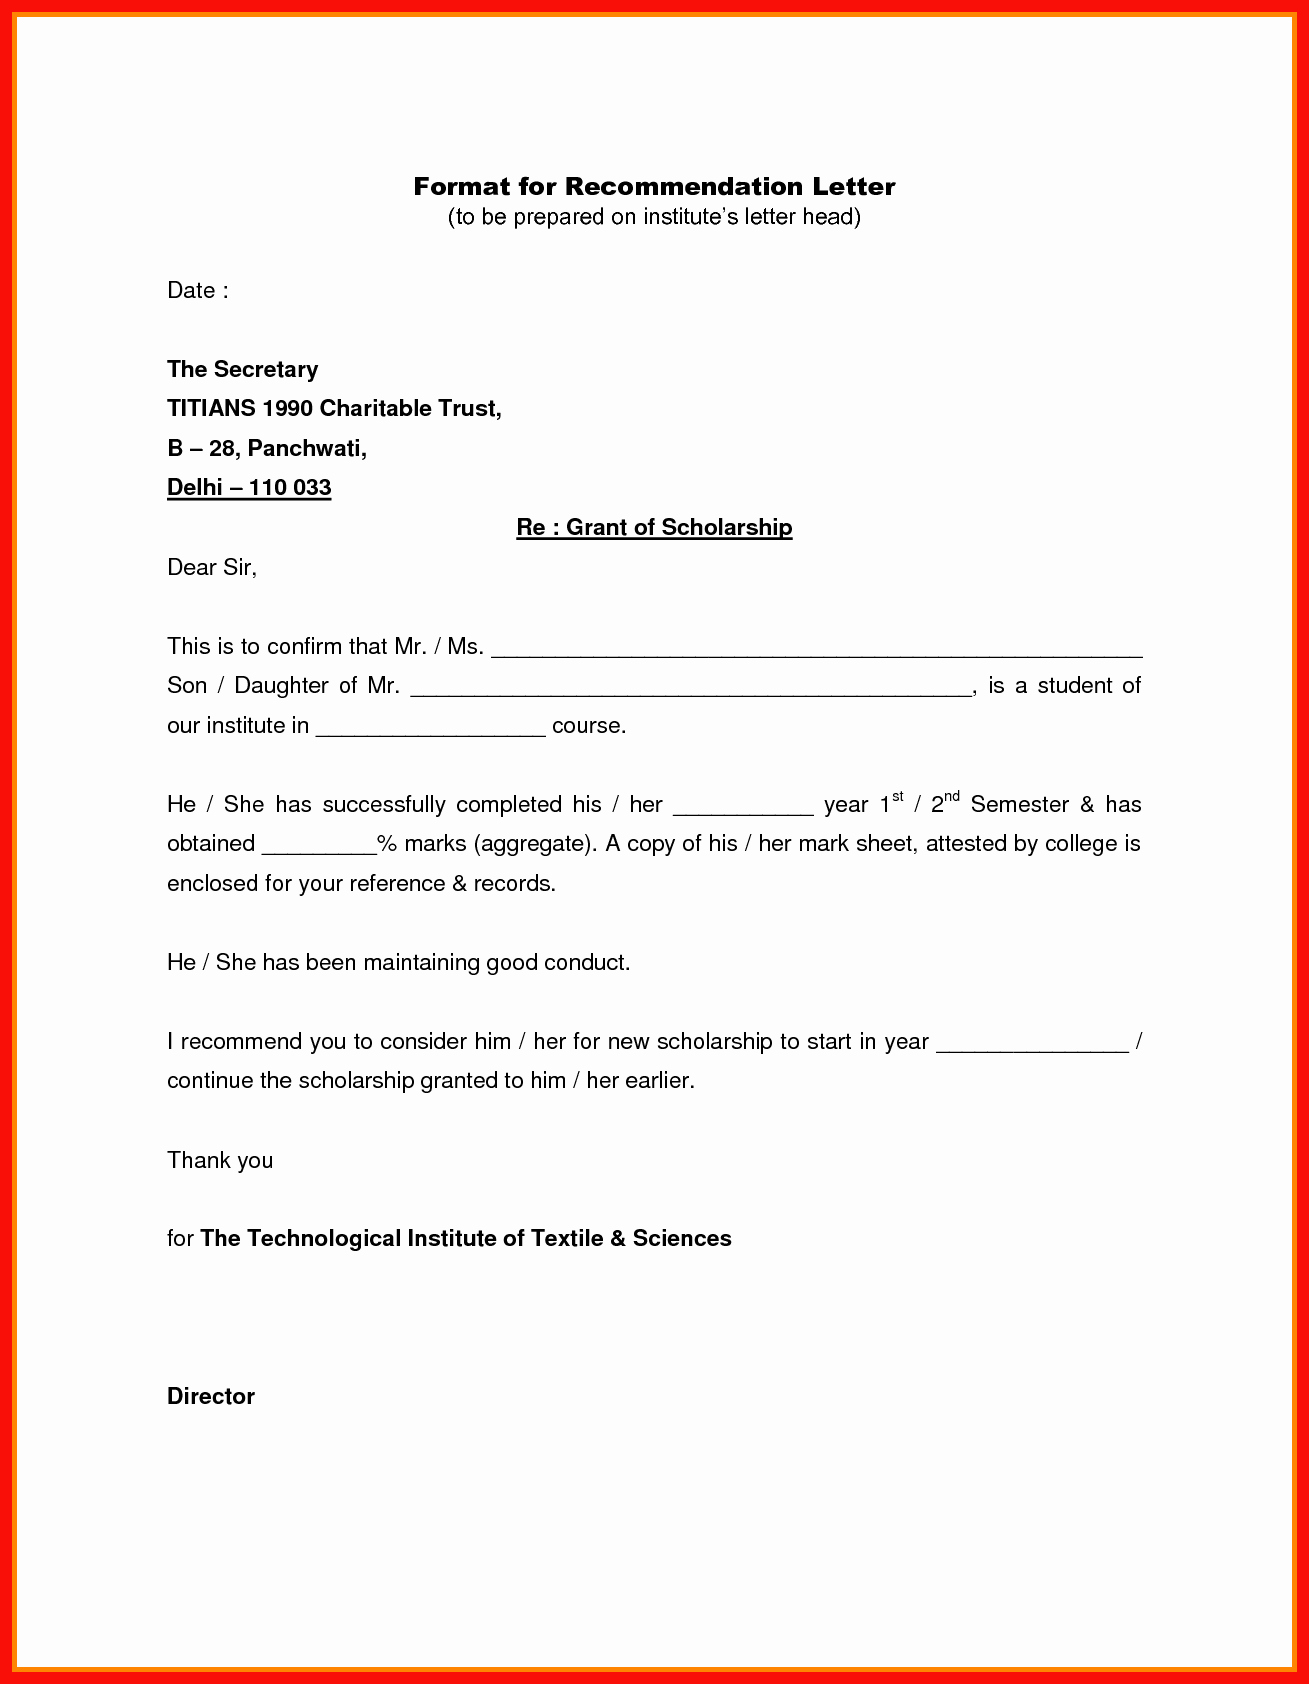 Letters Of Recommendation format Samples Fresh Reference Letter Heading